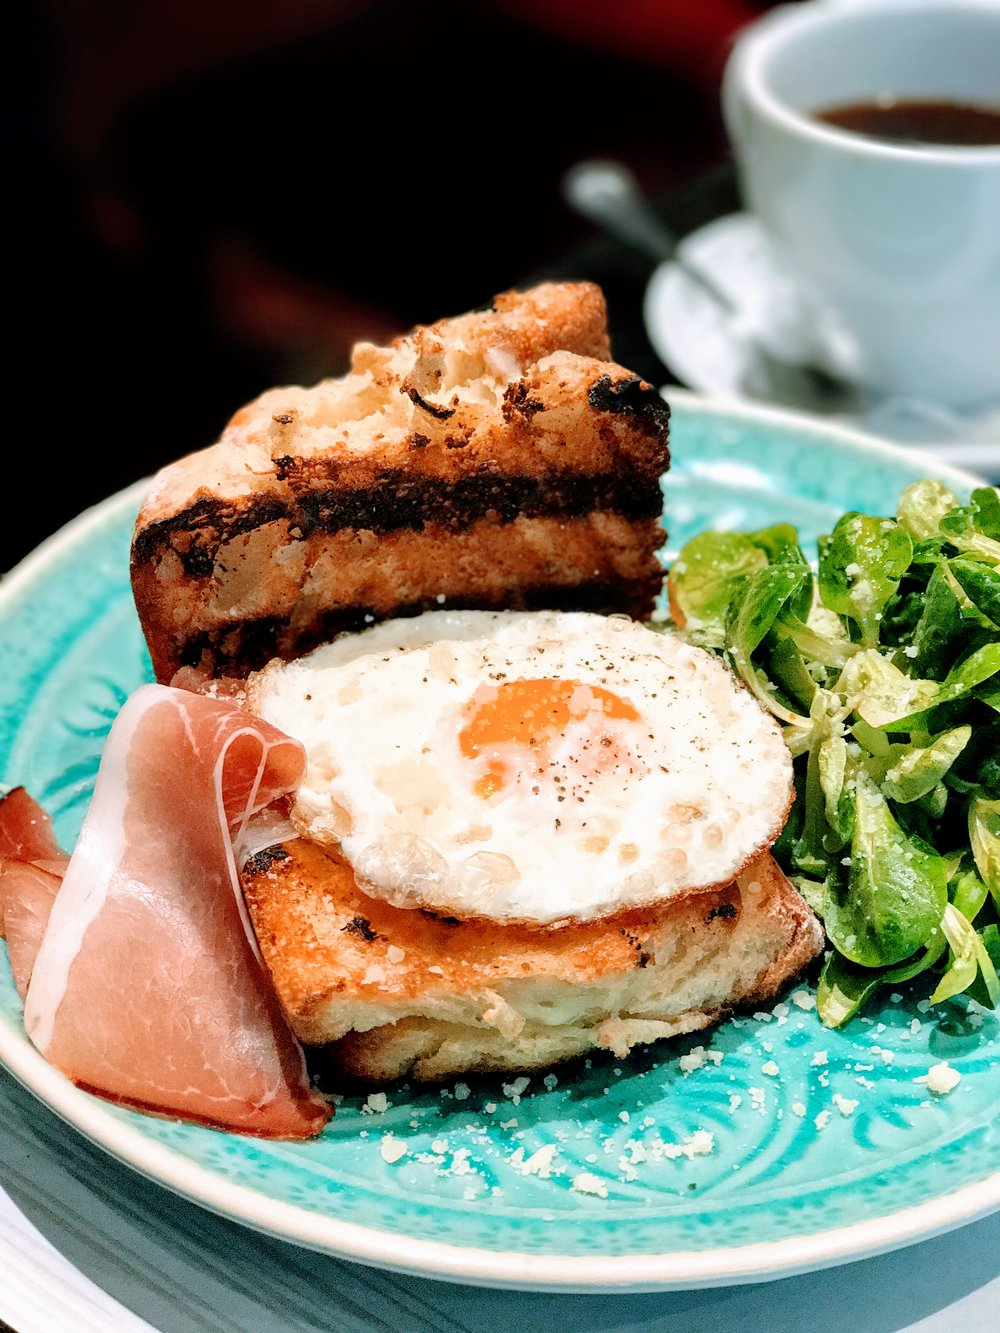 Croque Madame served with a few slices of prociutto and green salad